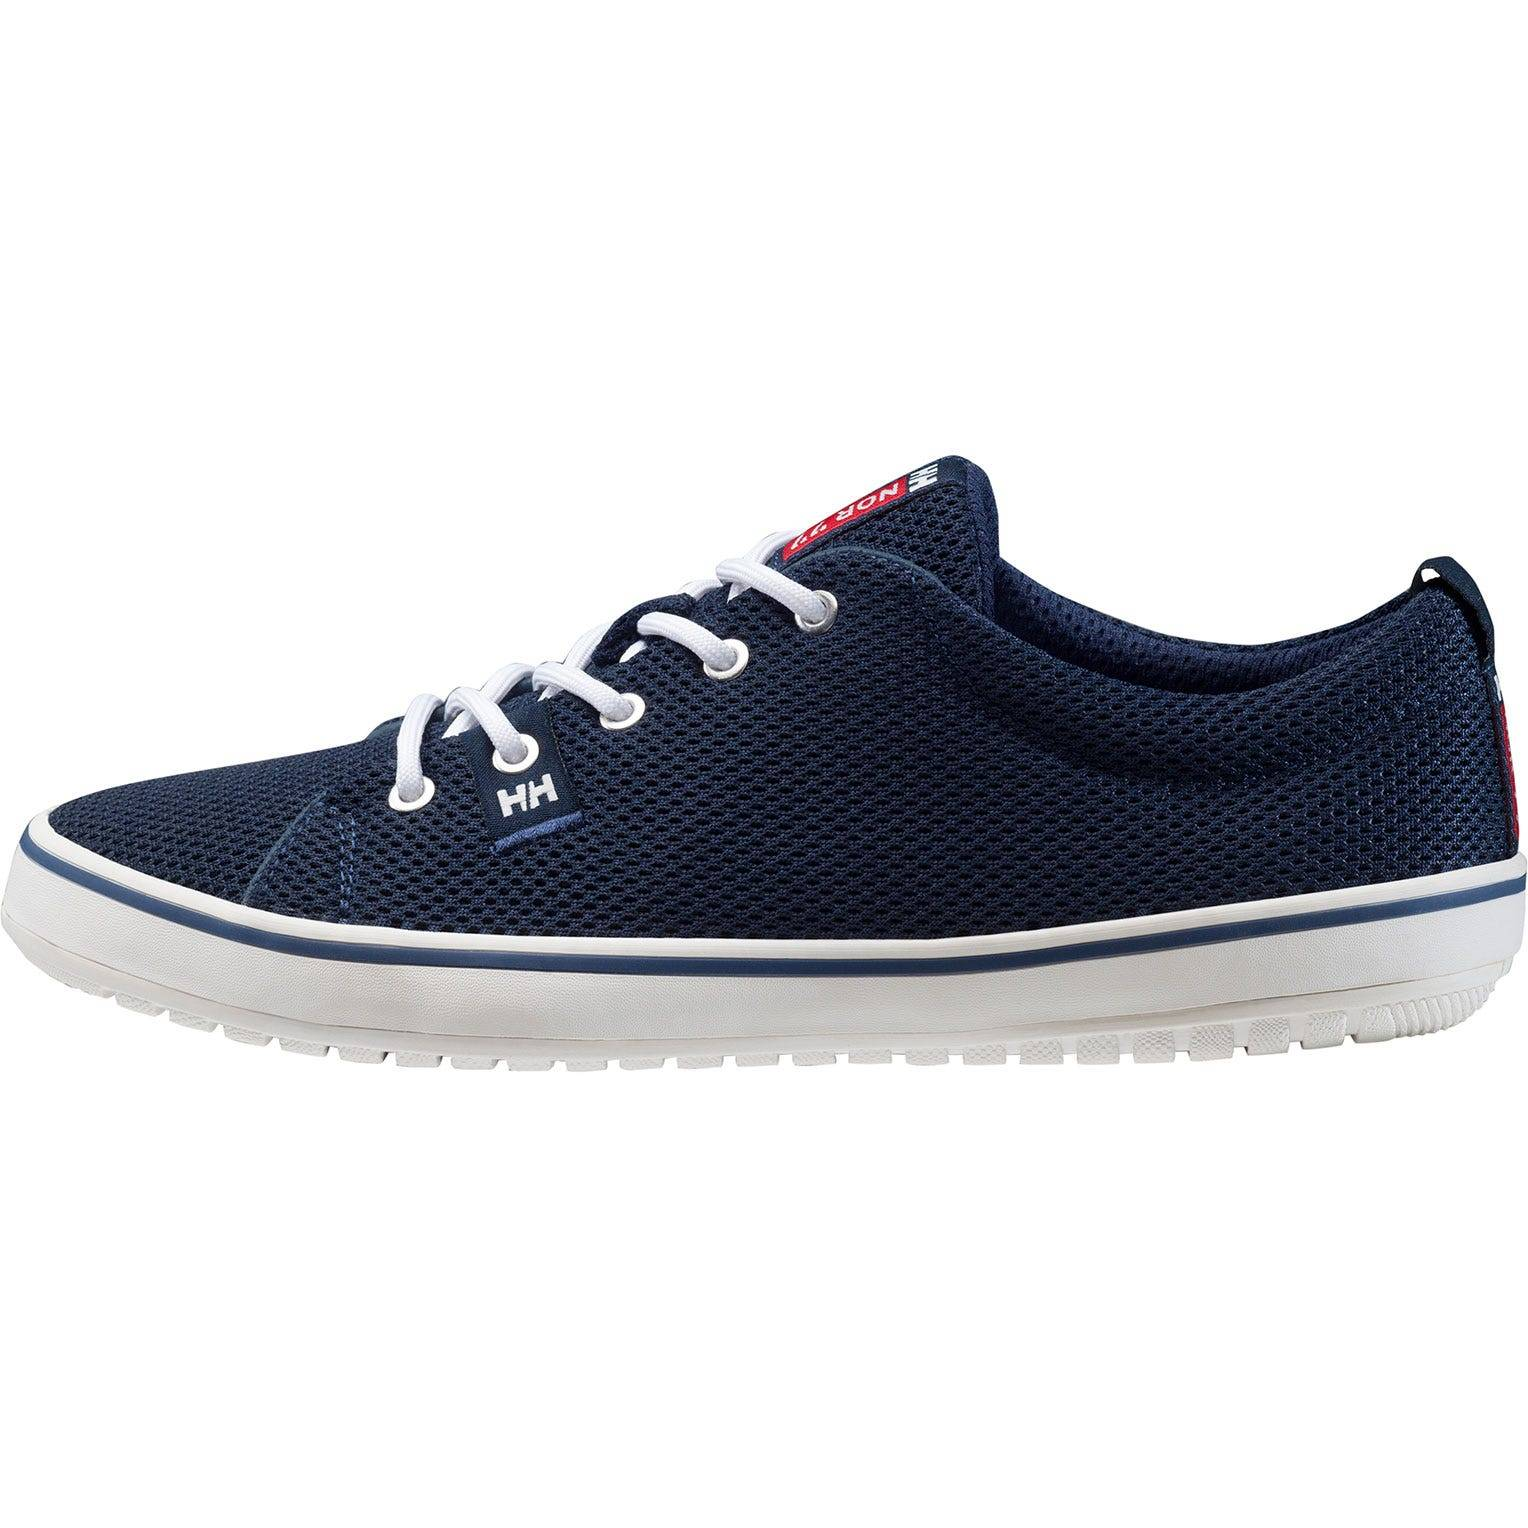 Helly Hansen W Scurry 2 Womens Casual Shoe Navy 37.5/6.5